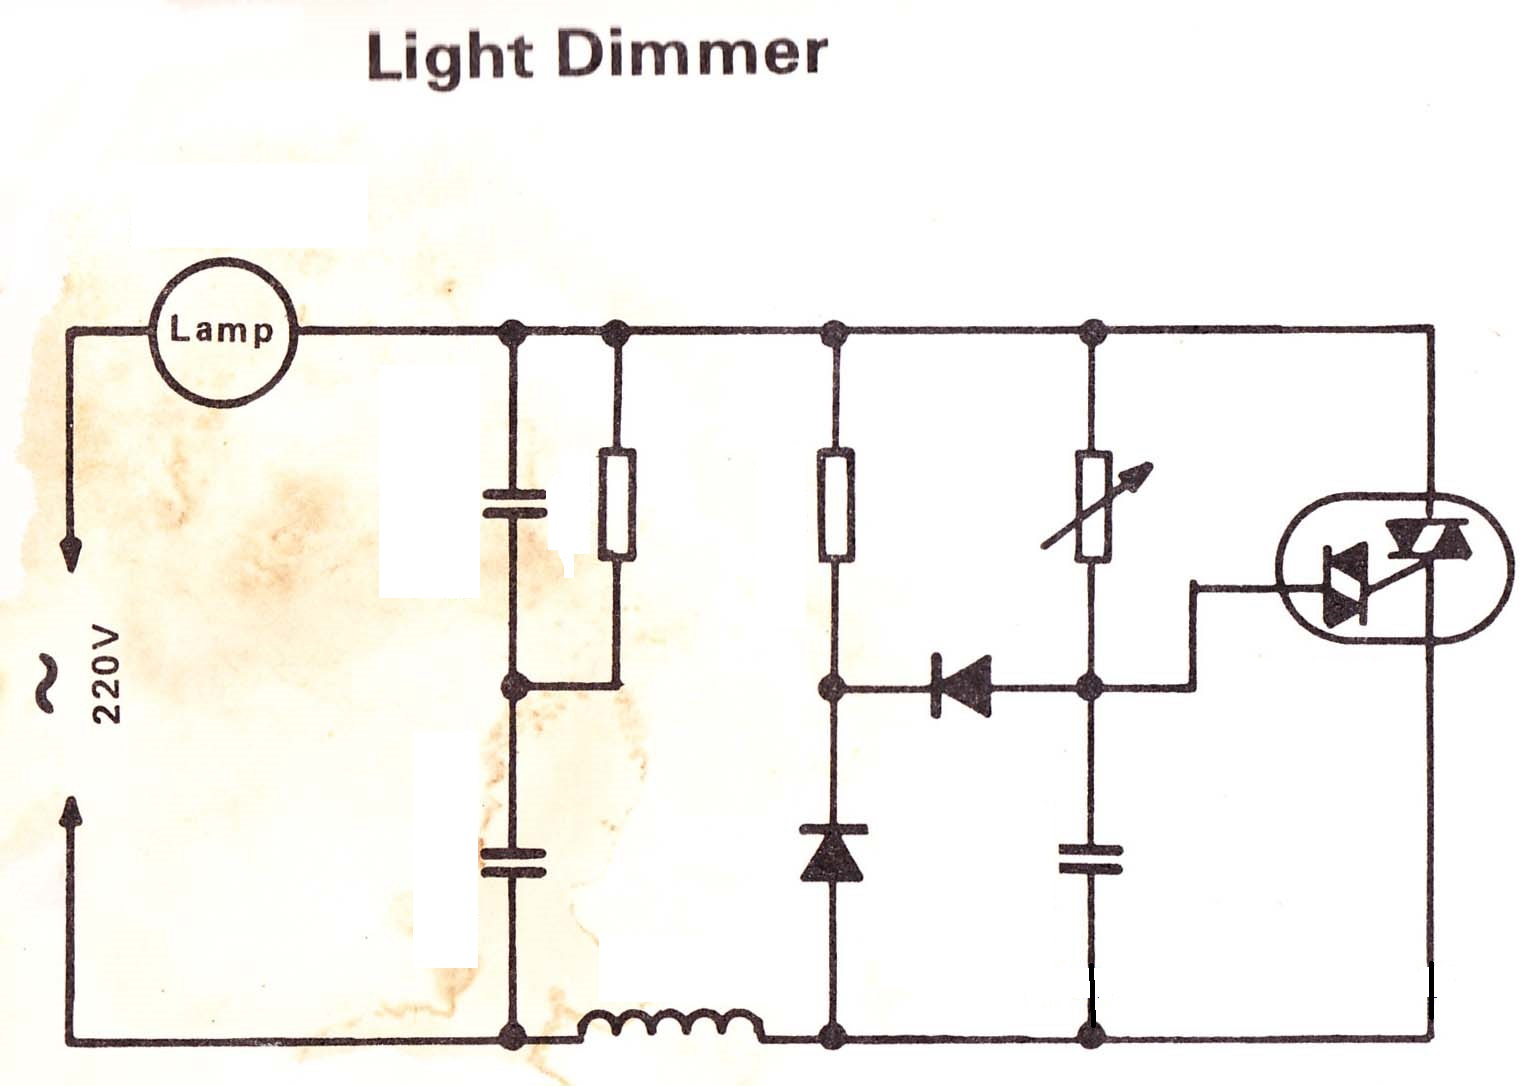 Electrical Standards Dimmer For Lights Electronic 220v Light Semiconductor